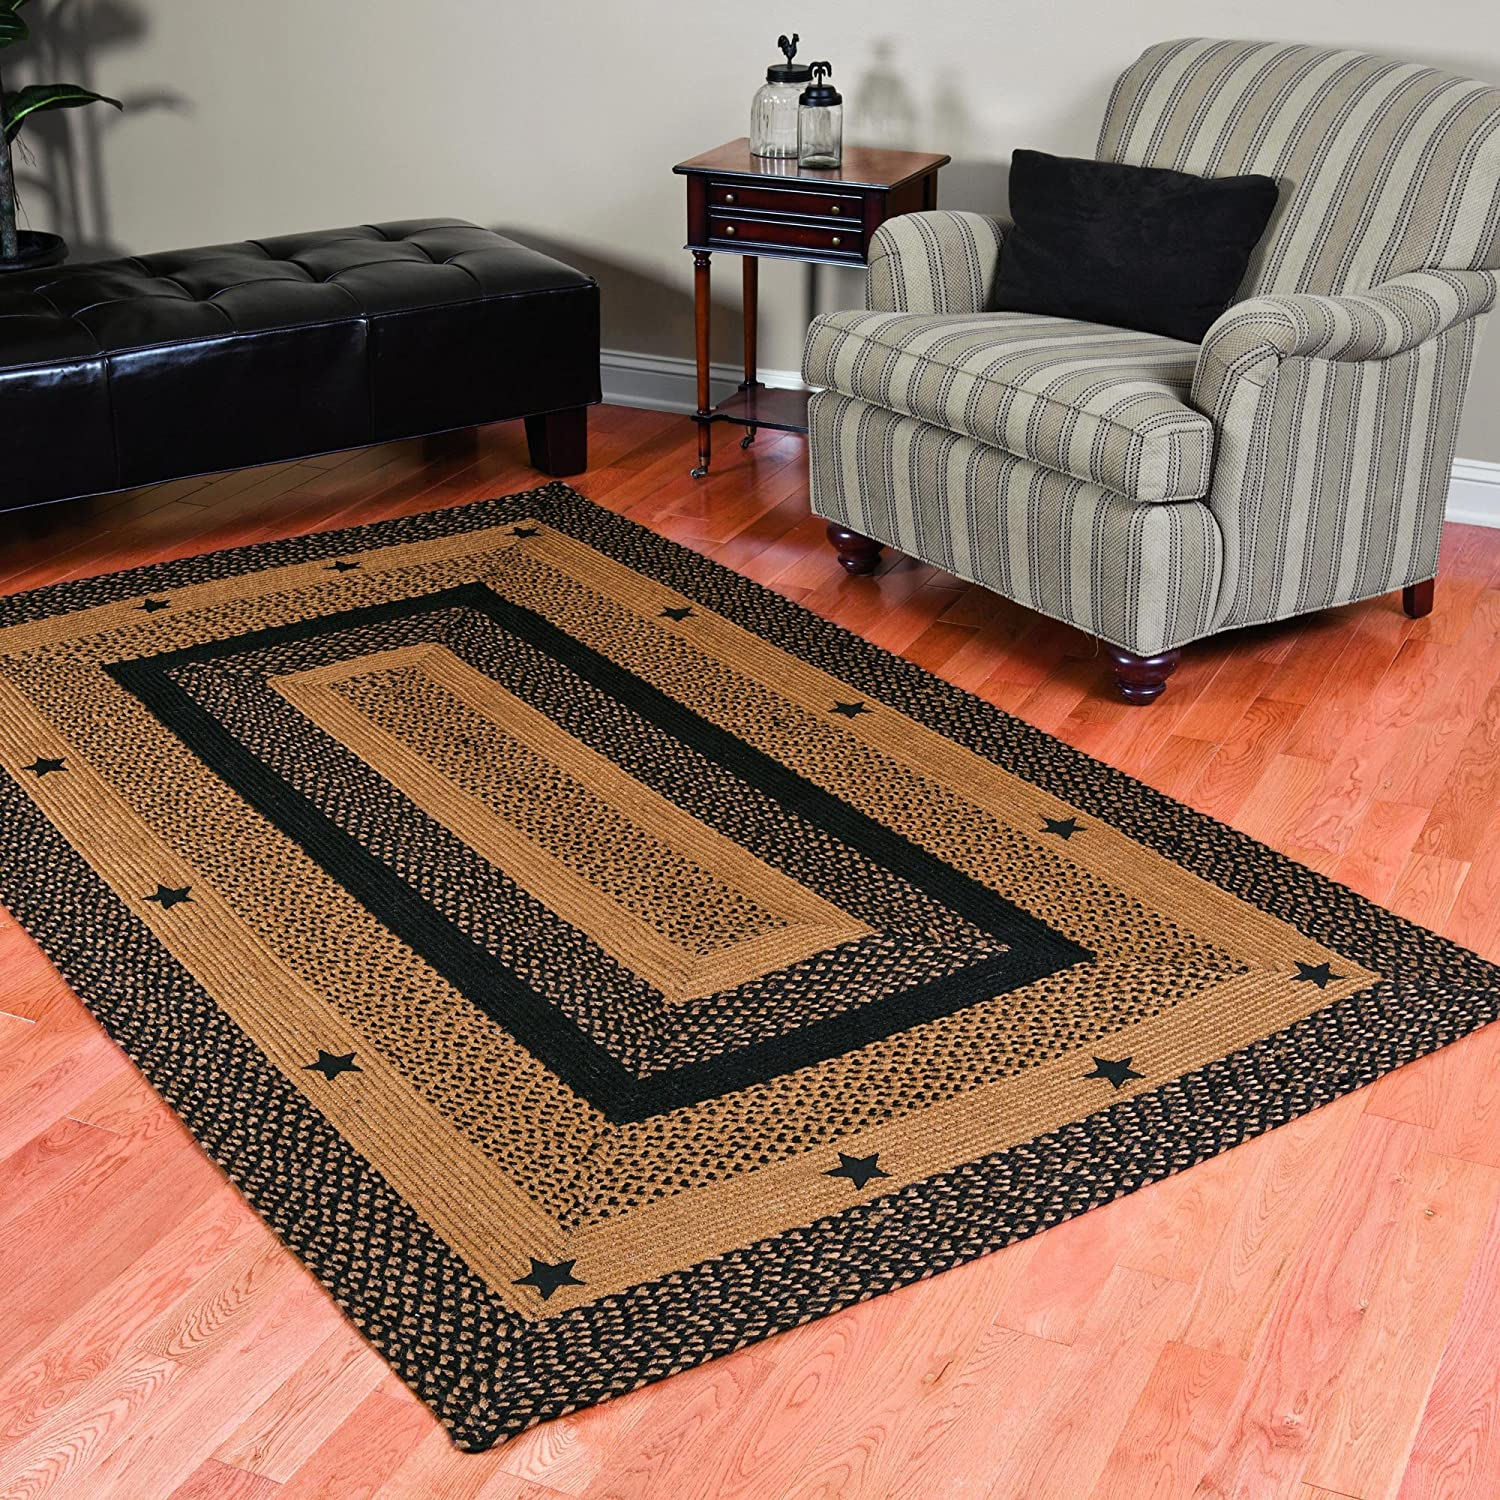 Ihf braided rugs roselawnlutheran for Country style flooring